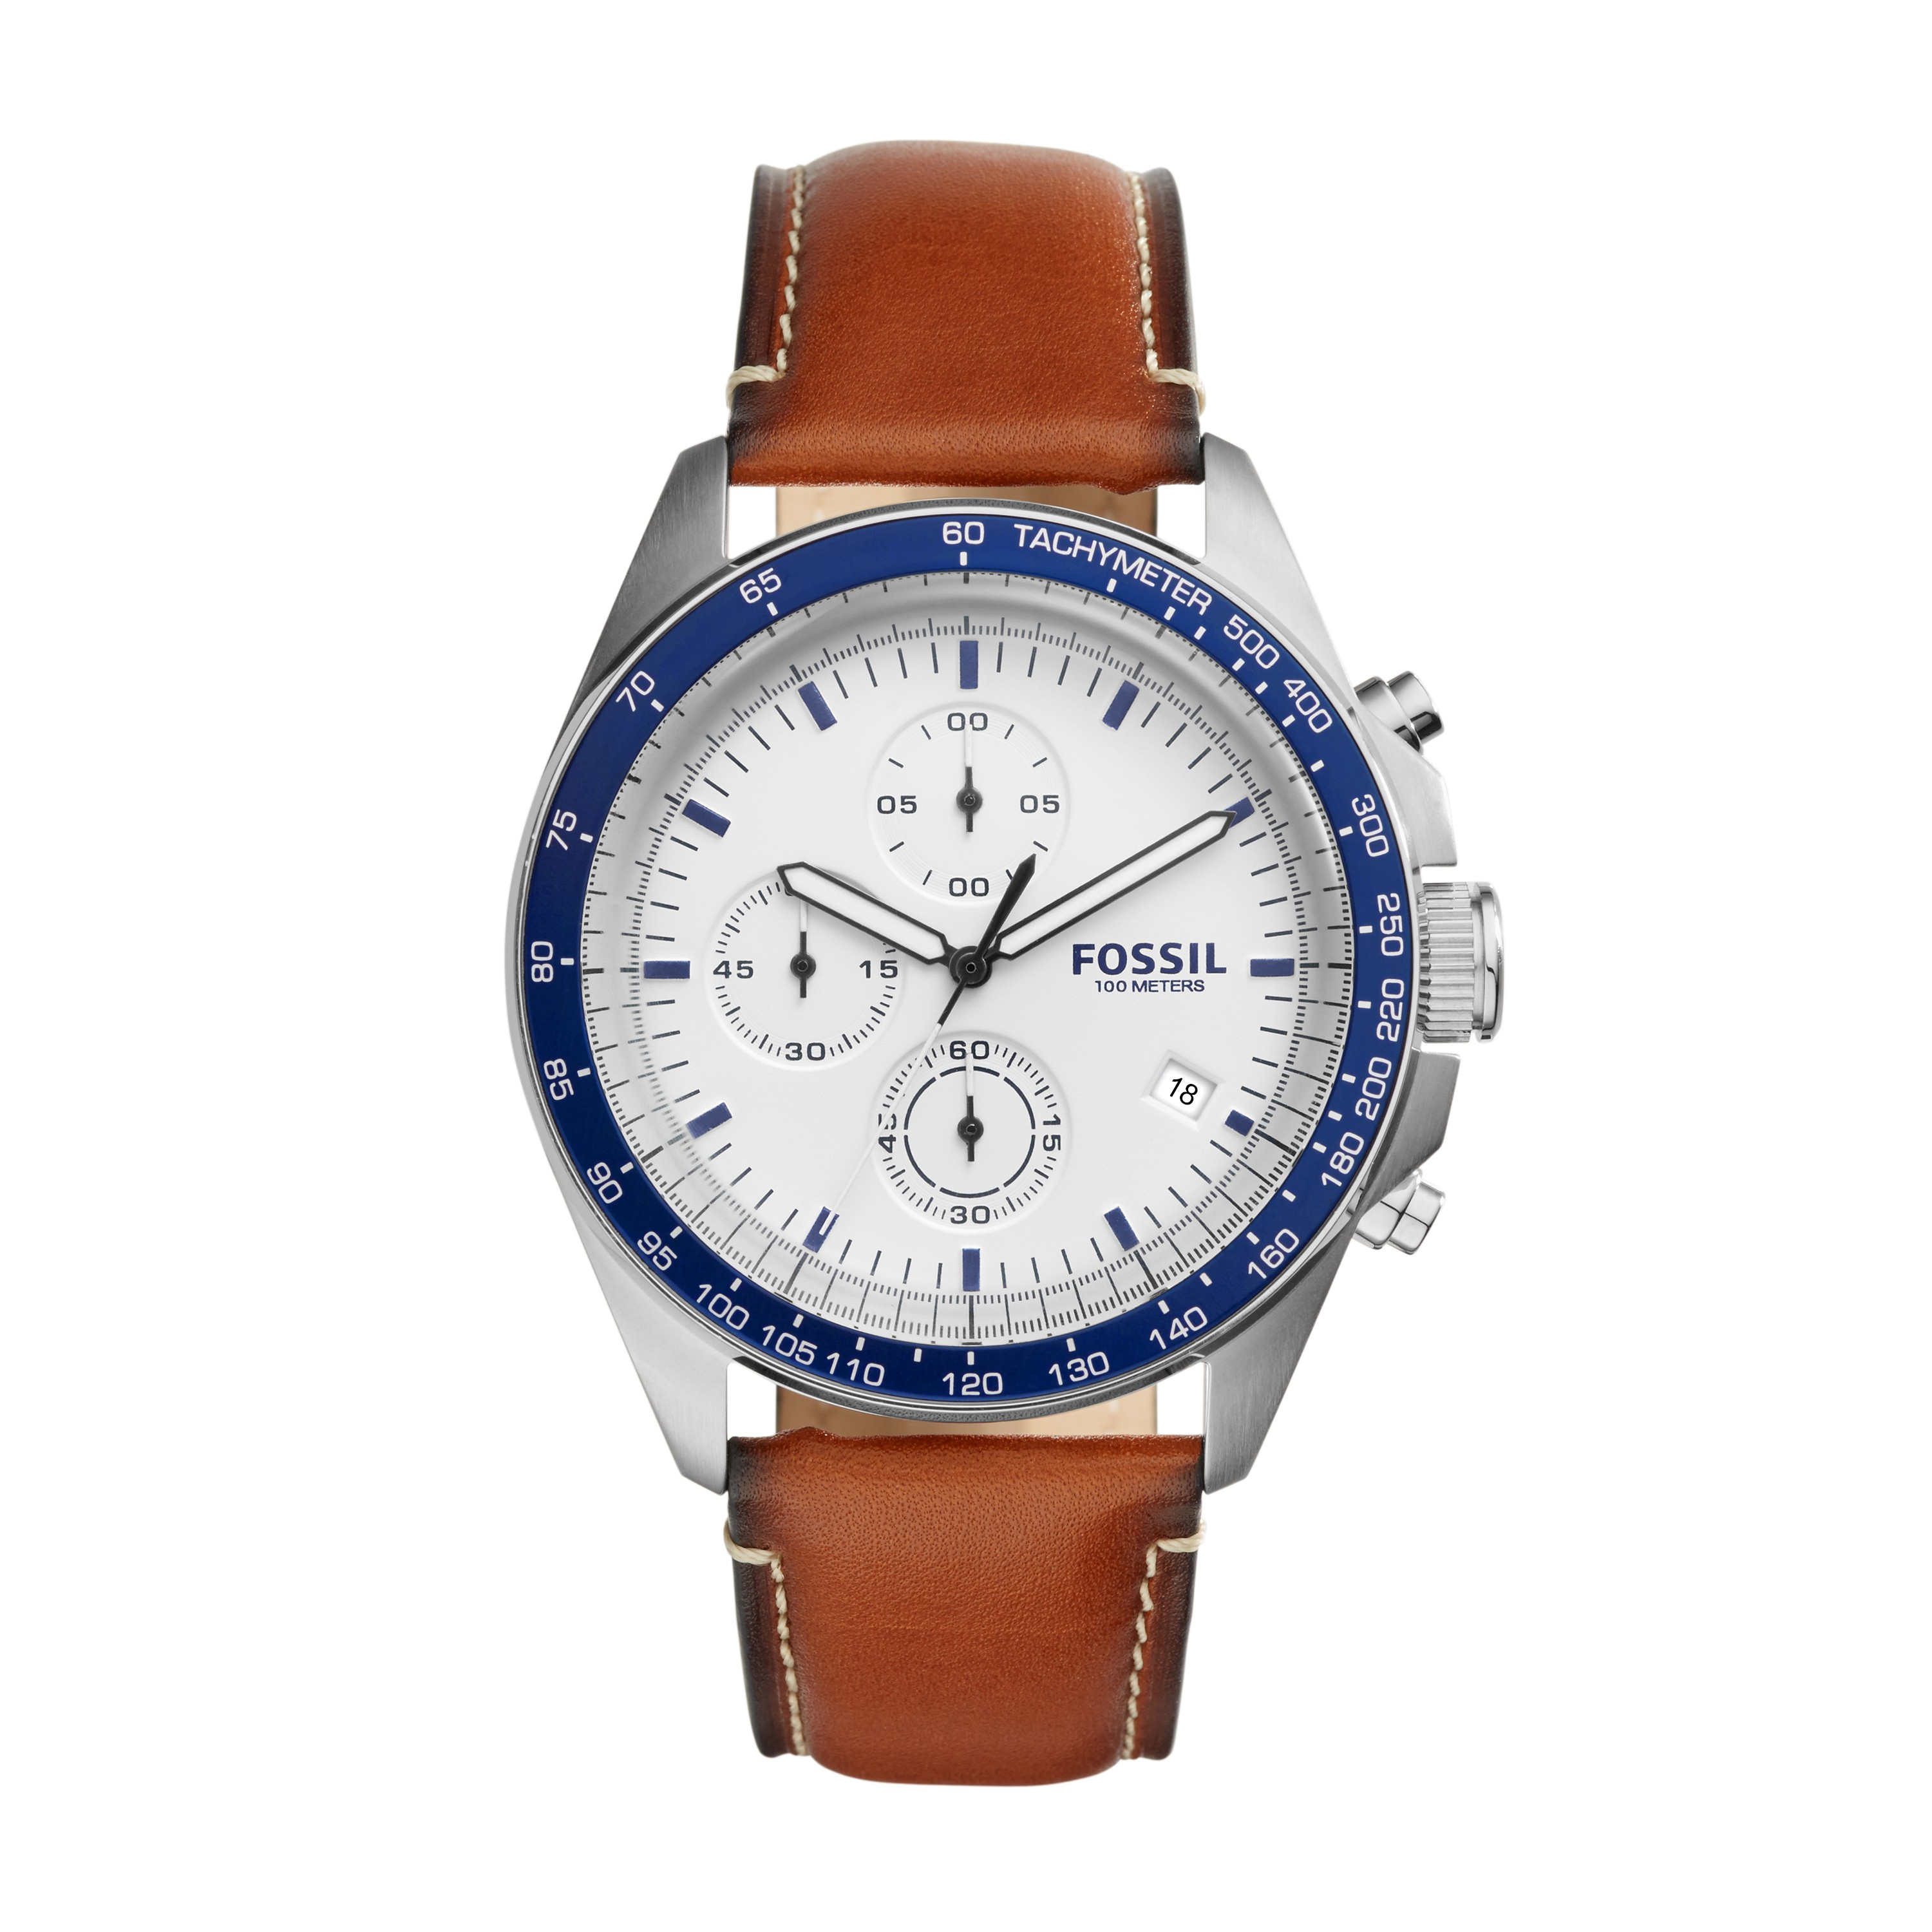 Fossil Sport 54 Chronograph Brown Leather Watch Ch3029